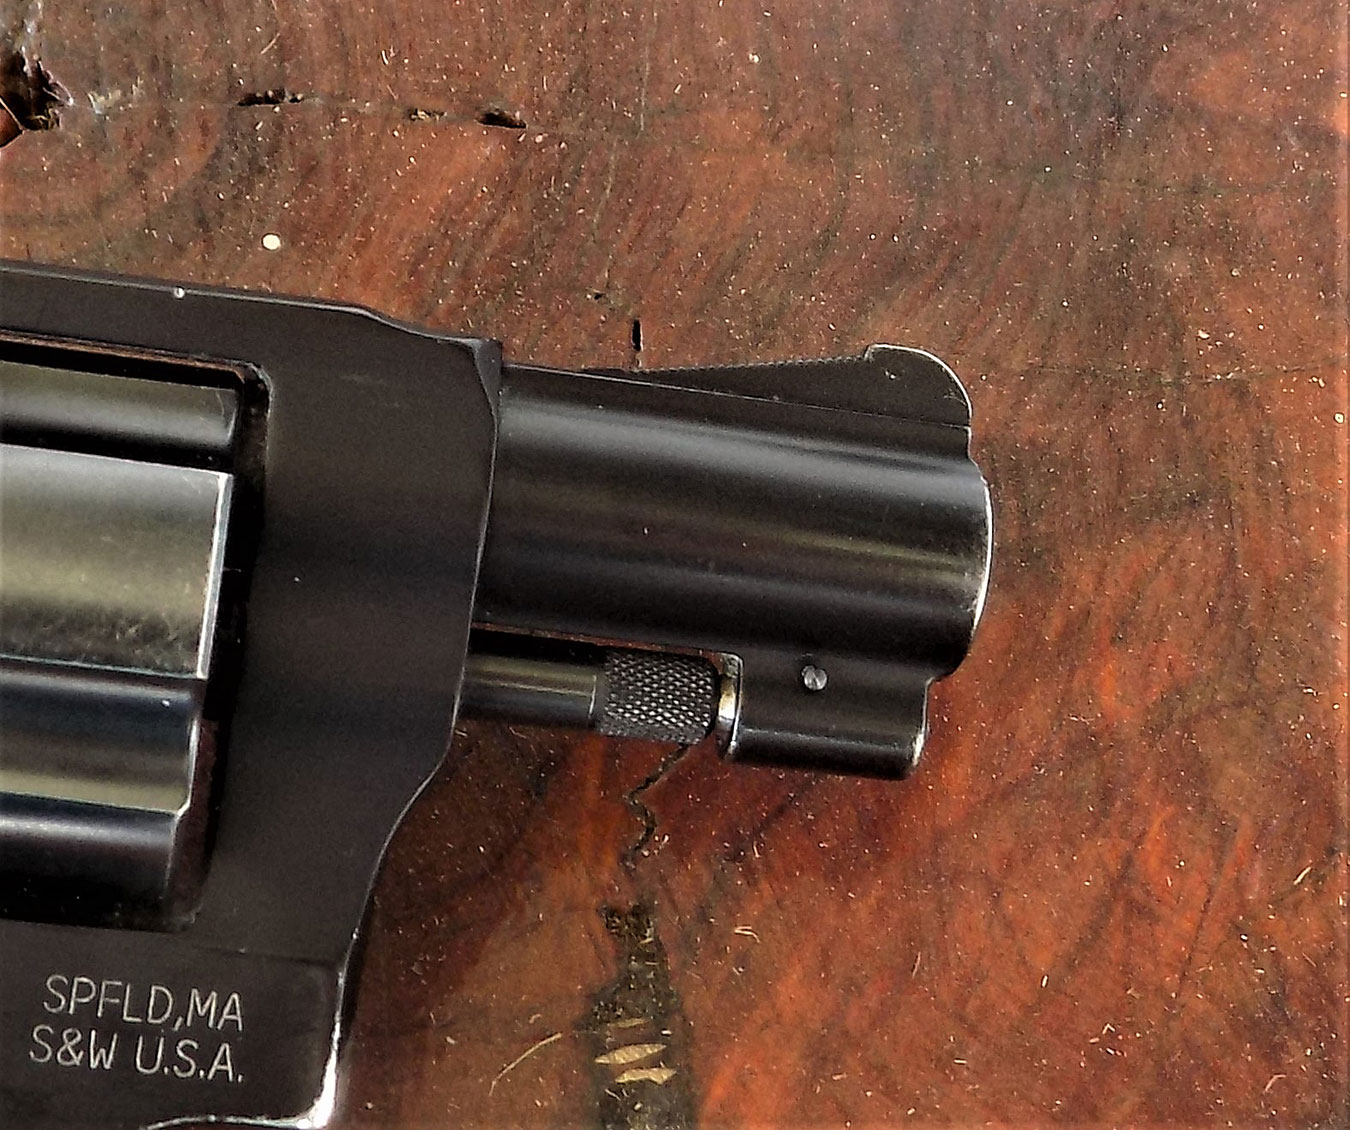 ramp front sight on snub nose revolver